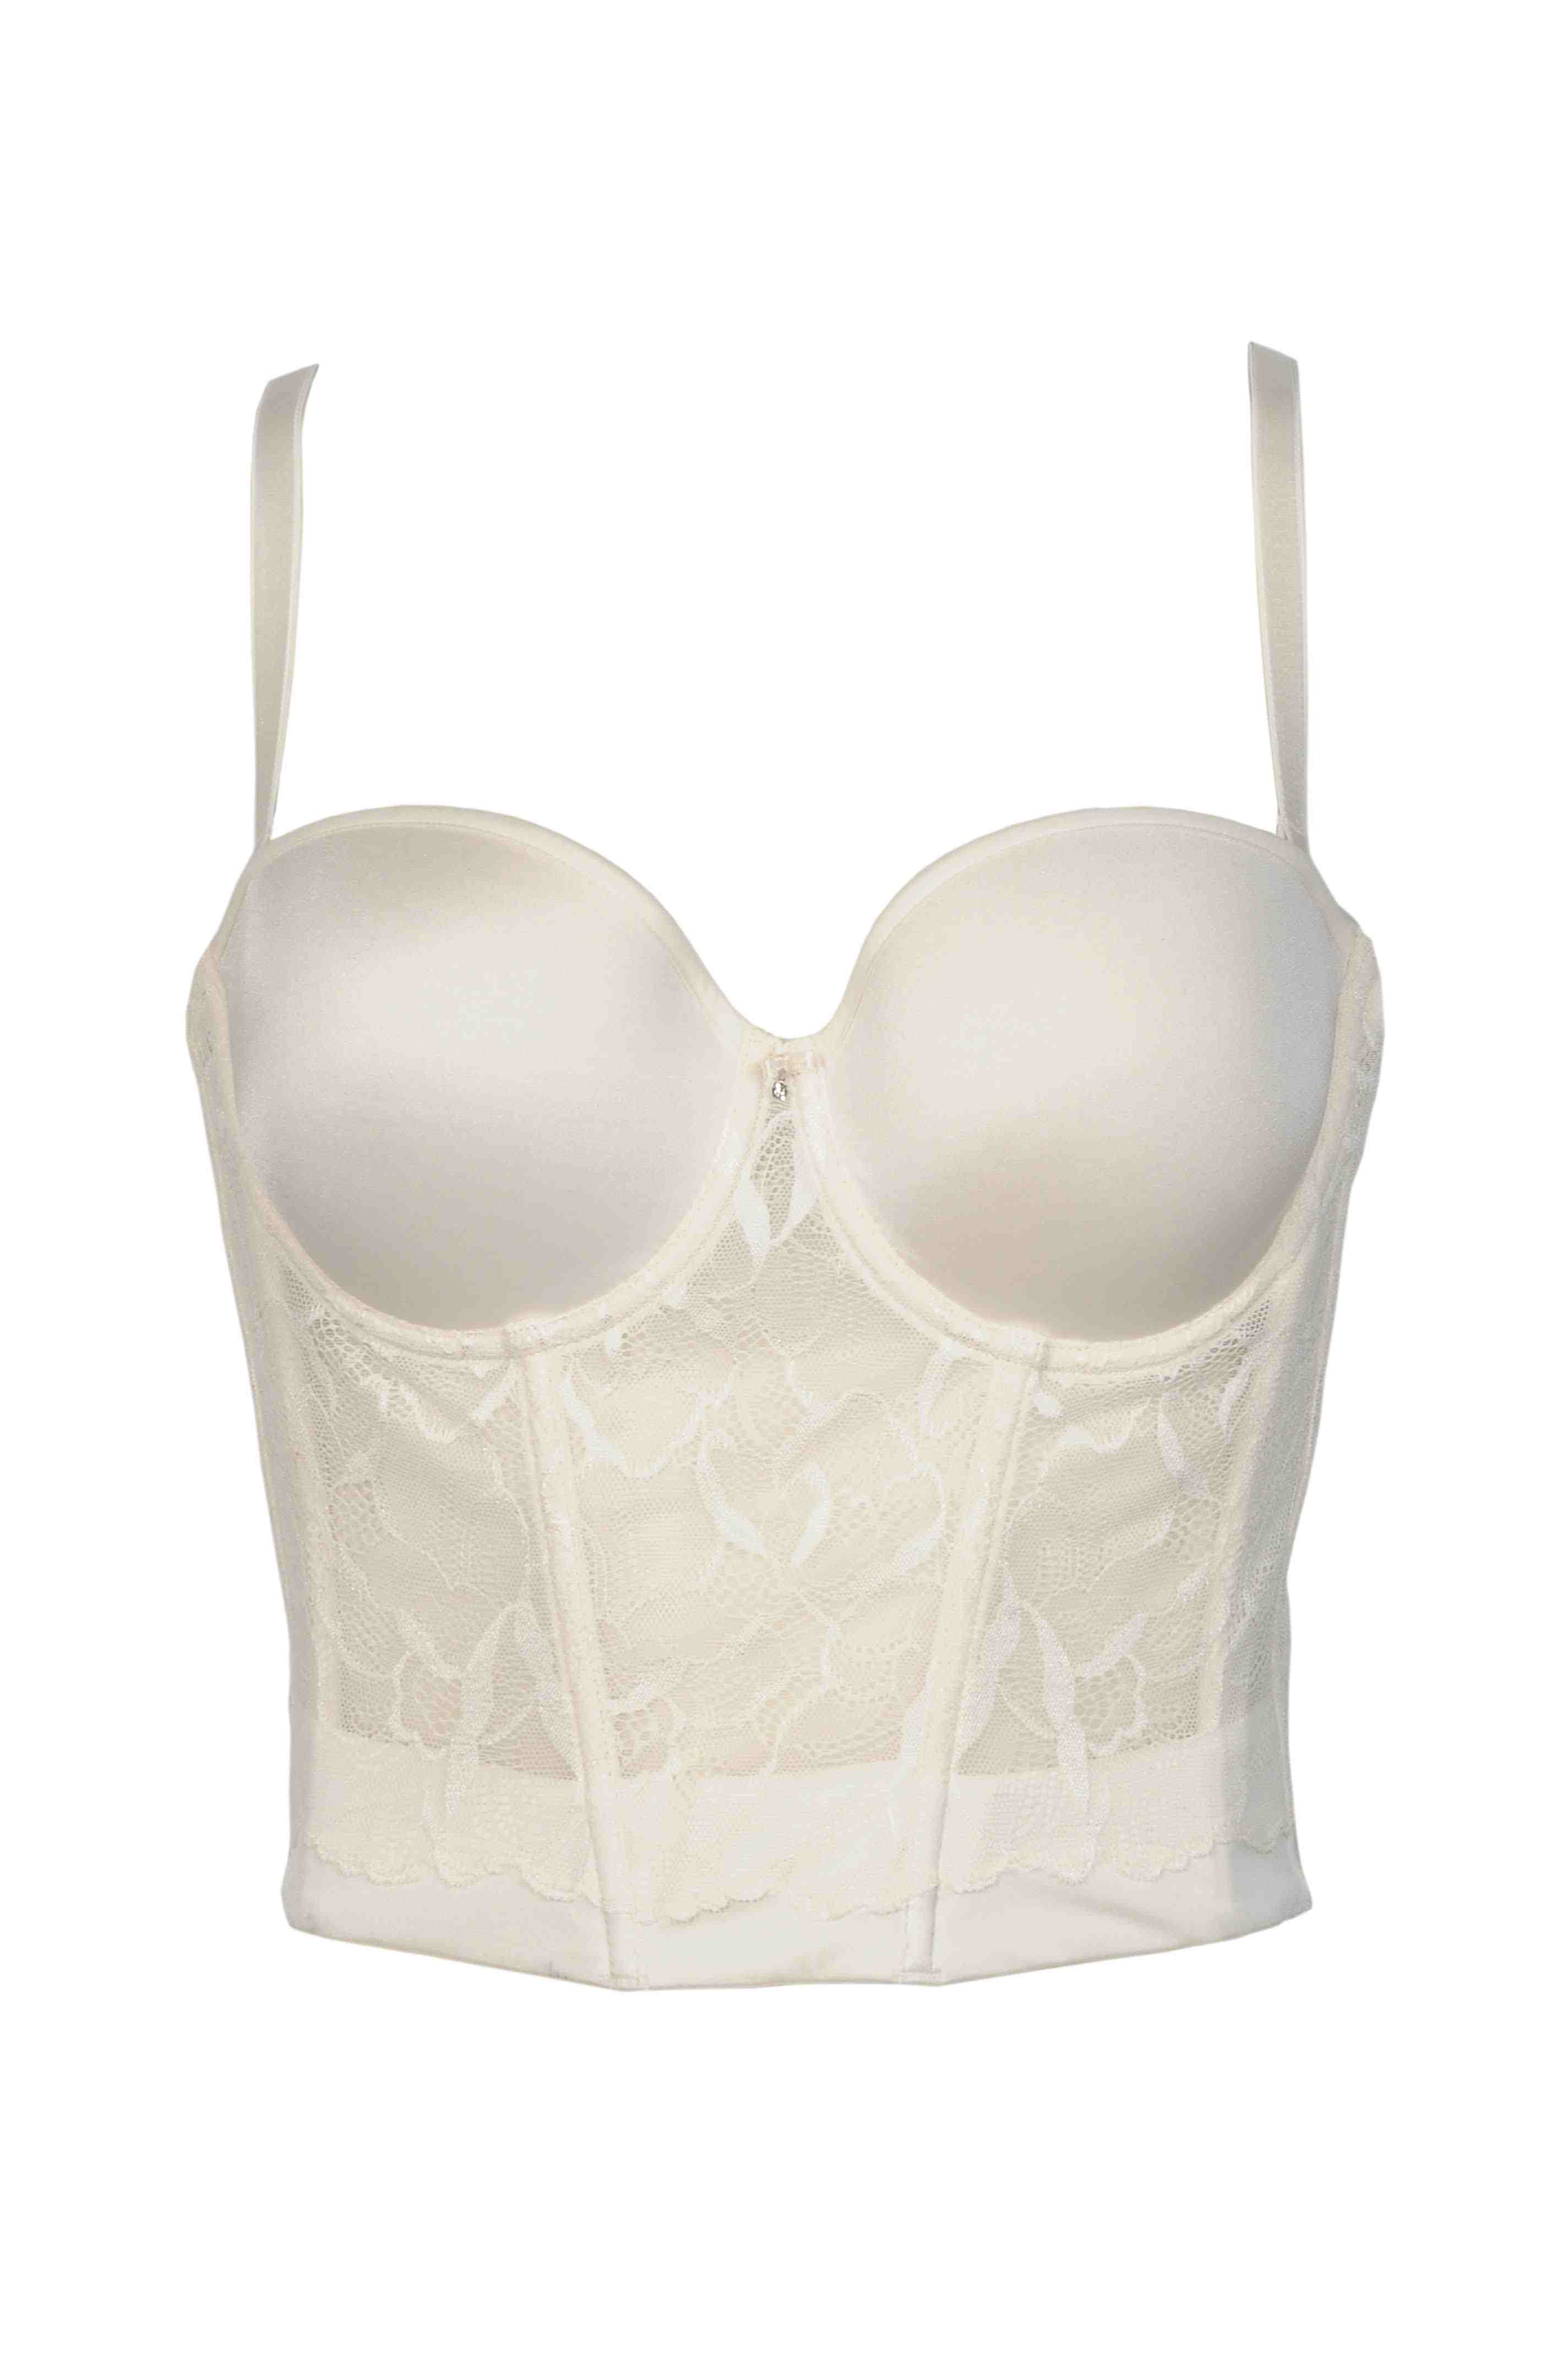 Longline Bras for Brides to Wear Under Your Wedding Gown